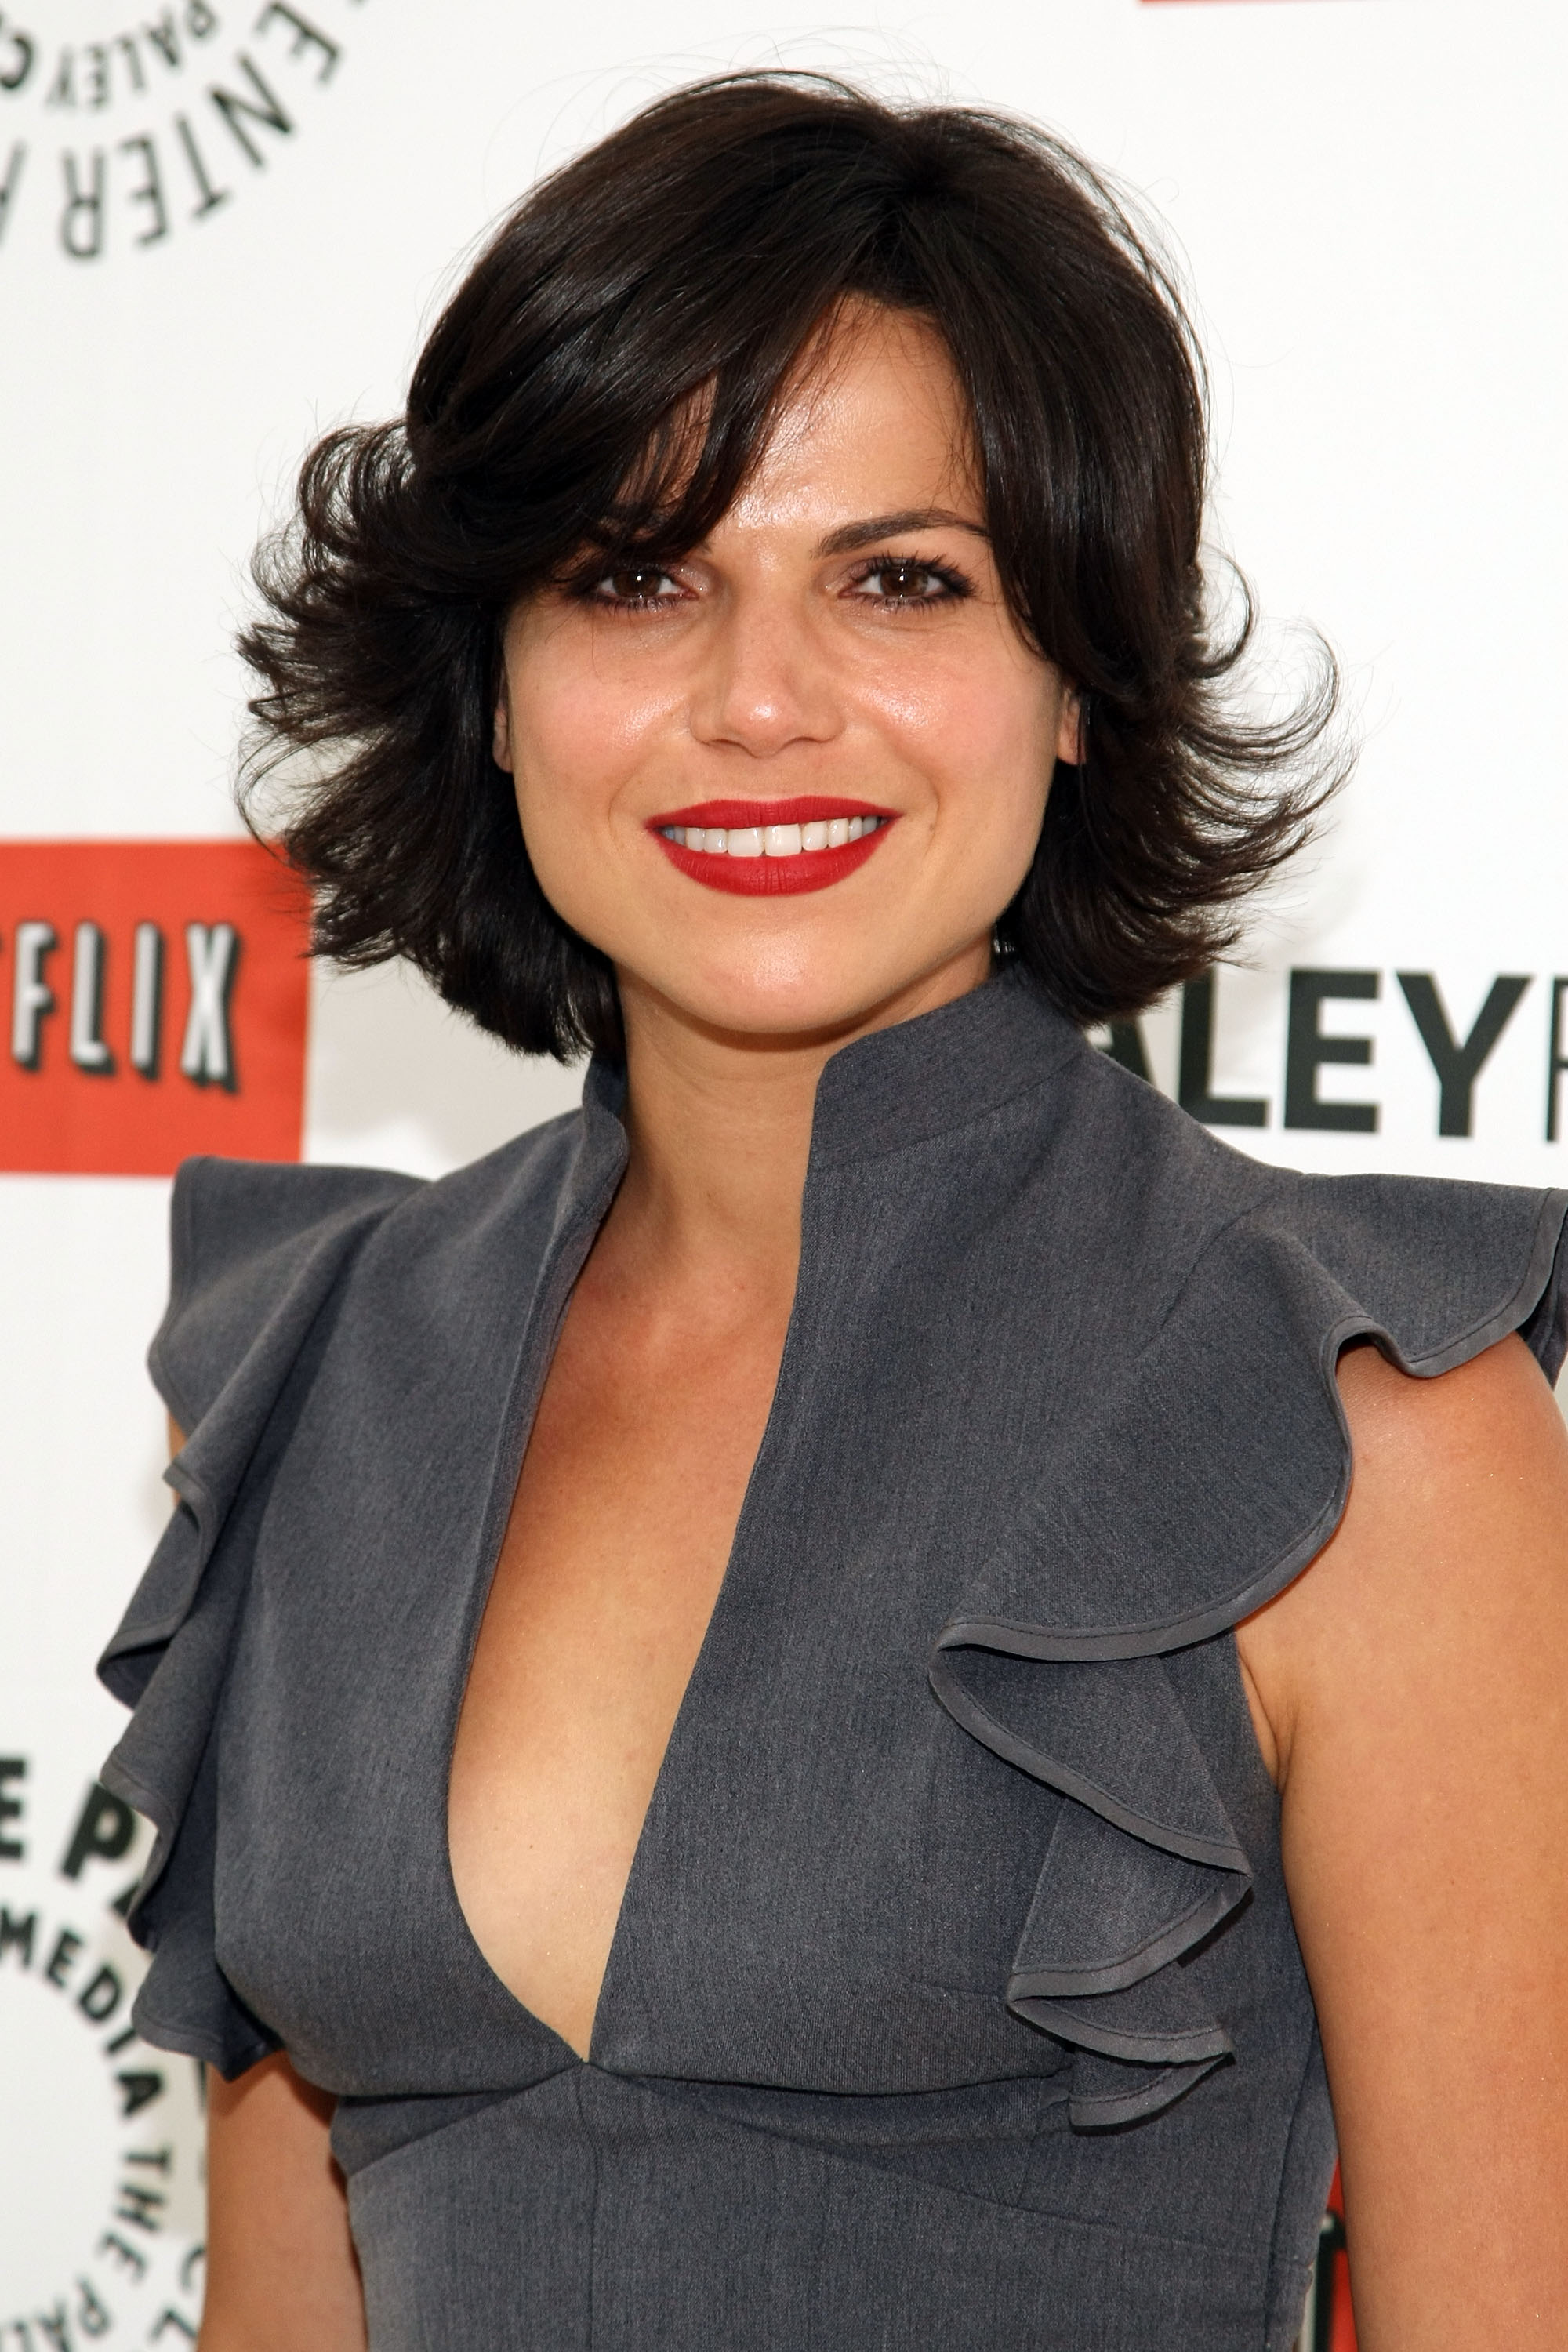 The 40-year old daughter of father Sam Parrilla and mother(?), 164 cm tall Lana Parrilla in 2017 photo